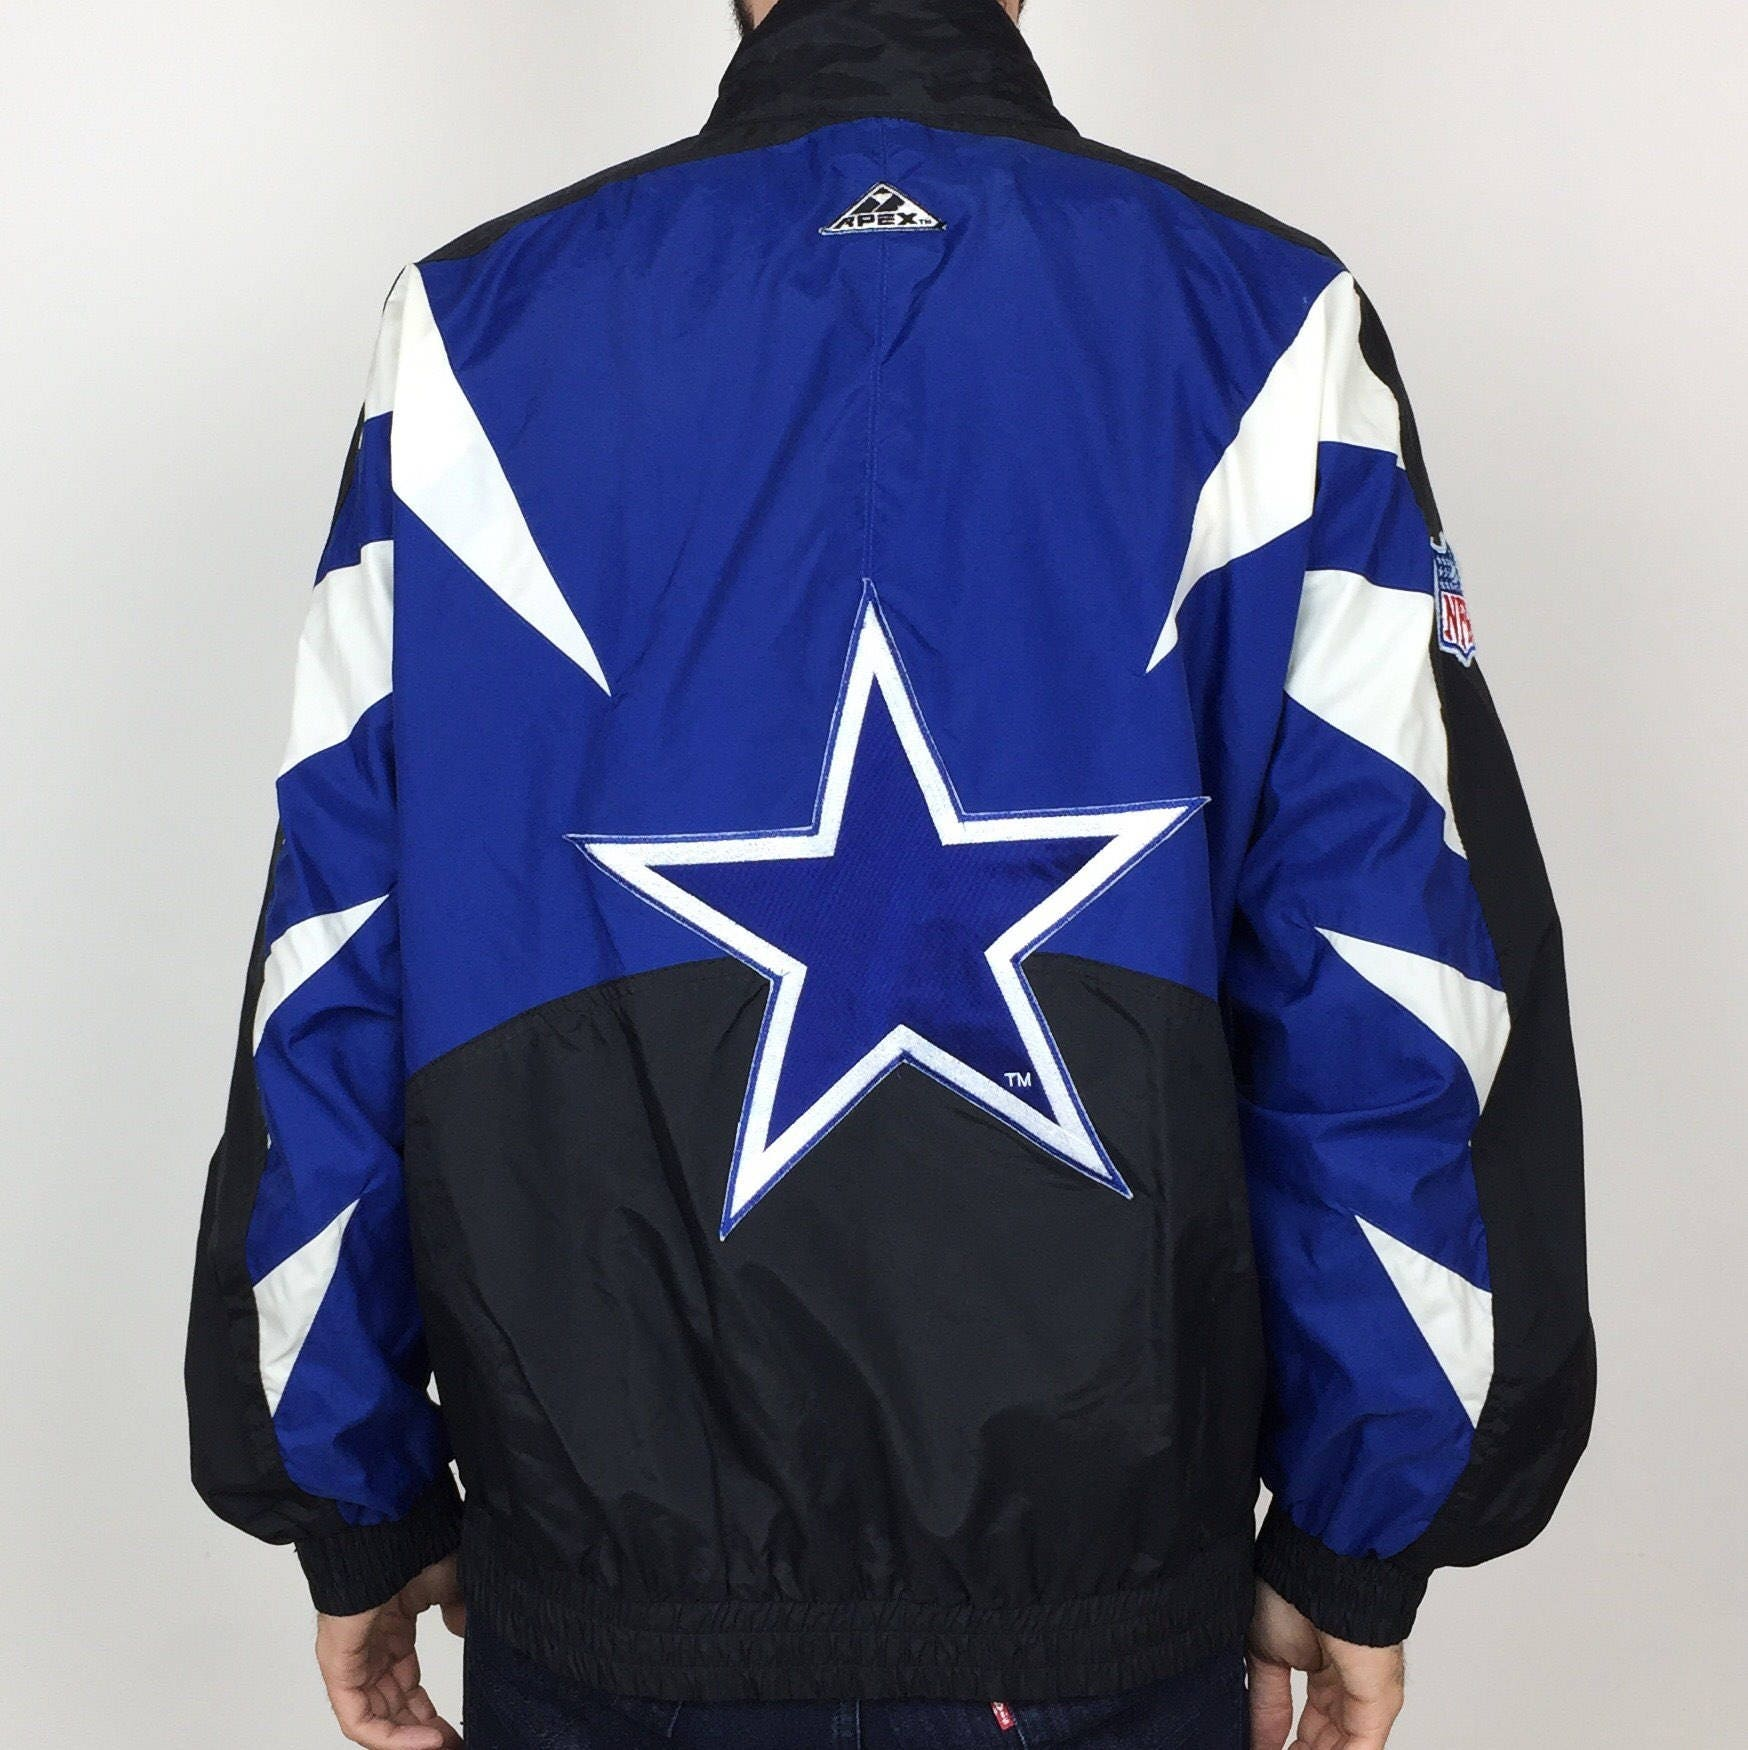 RARE Vintage 90s NFL Dallas Cowboys Apex One zip up football windbreaker  jacket - Size M 7a3fe7b83